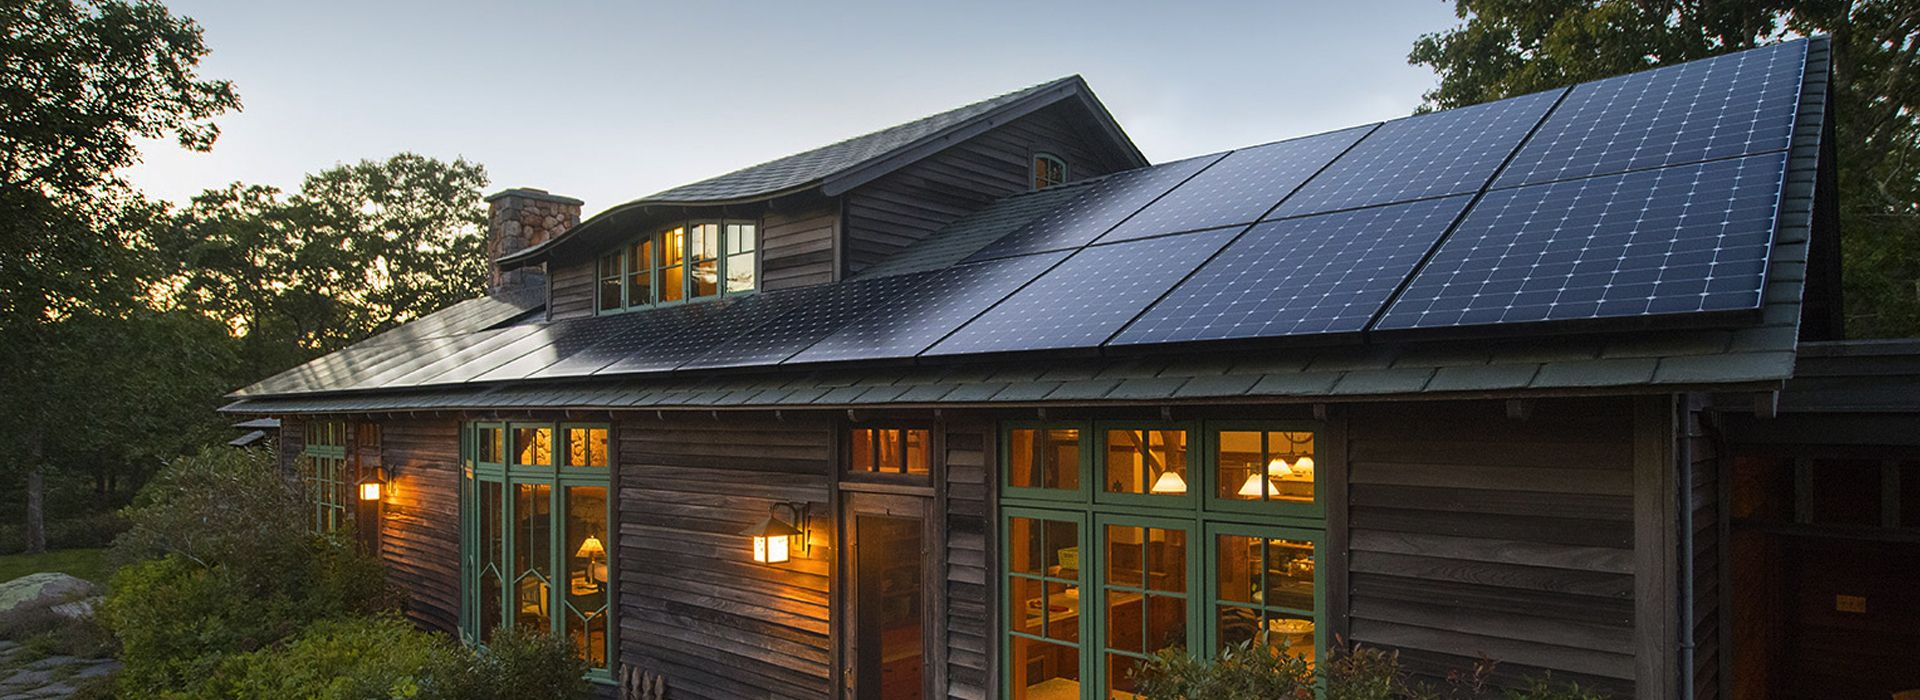 cabin home with solar panels